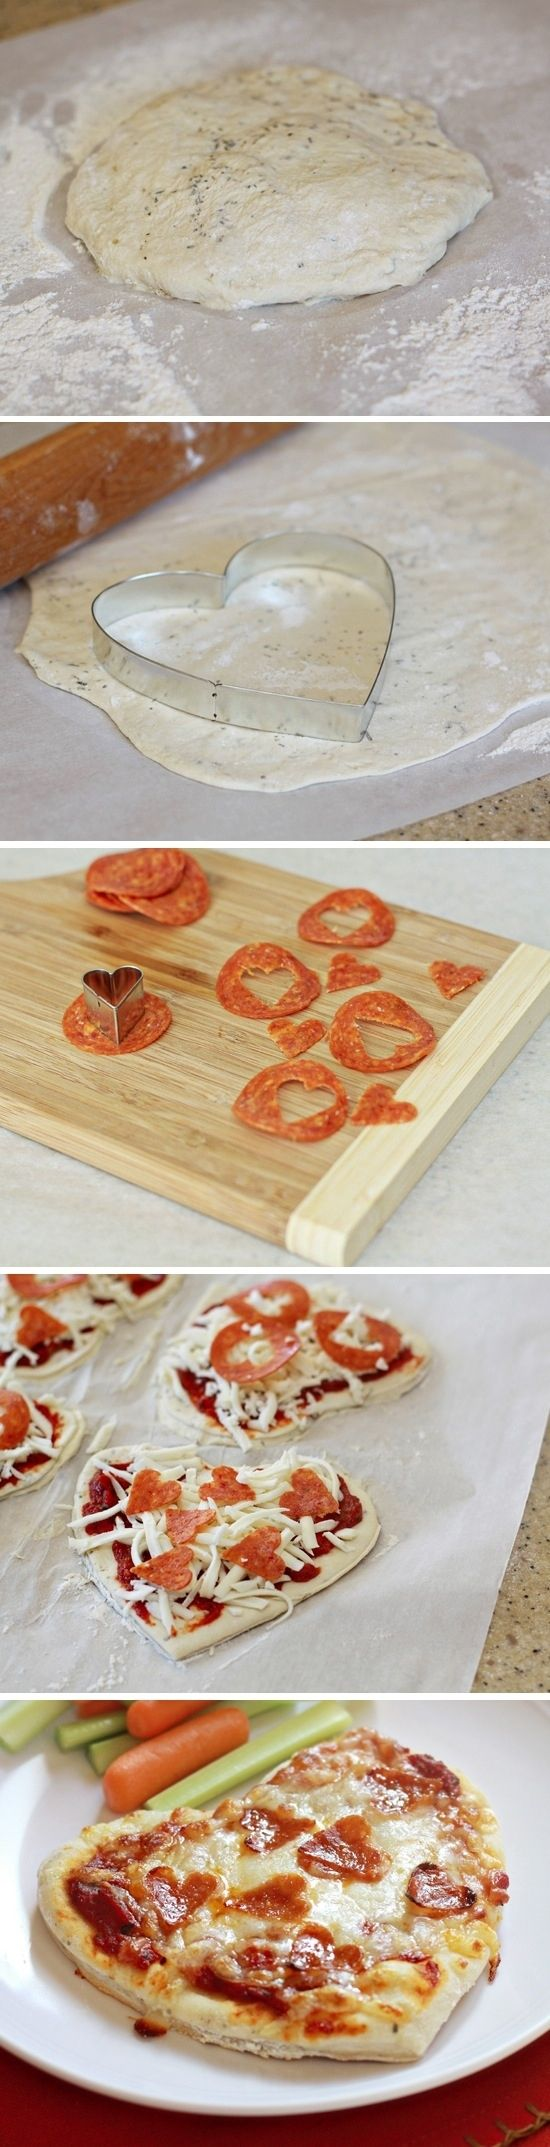 Heart-Shaped Mini Pizzas with Heart-Shaped Pepperonis   29 Fun Food Crafts To Make For Someone You Love